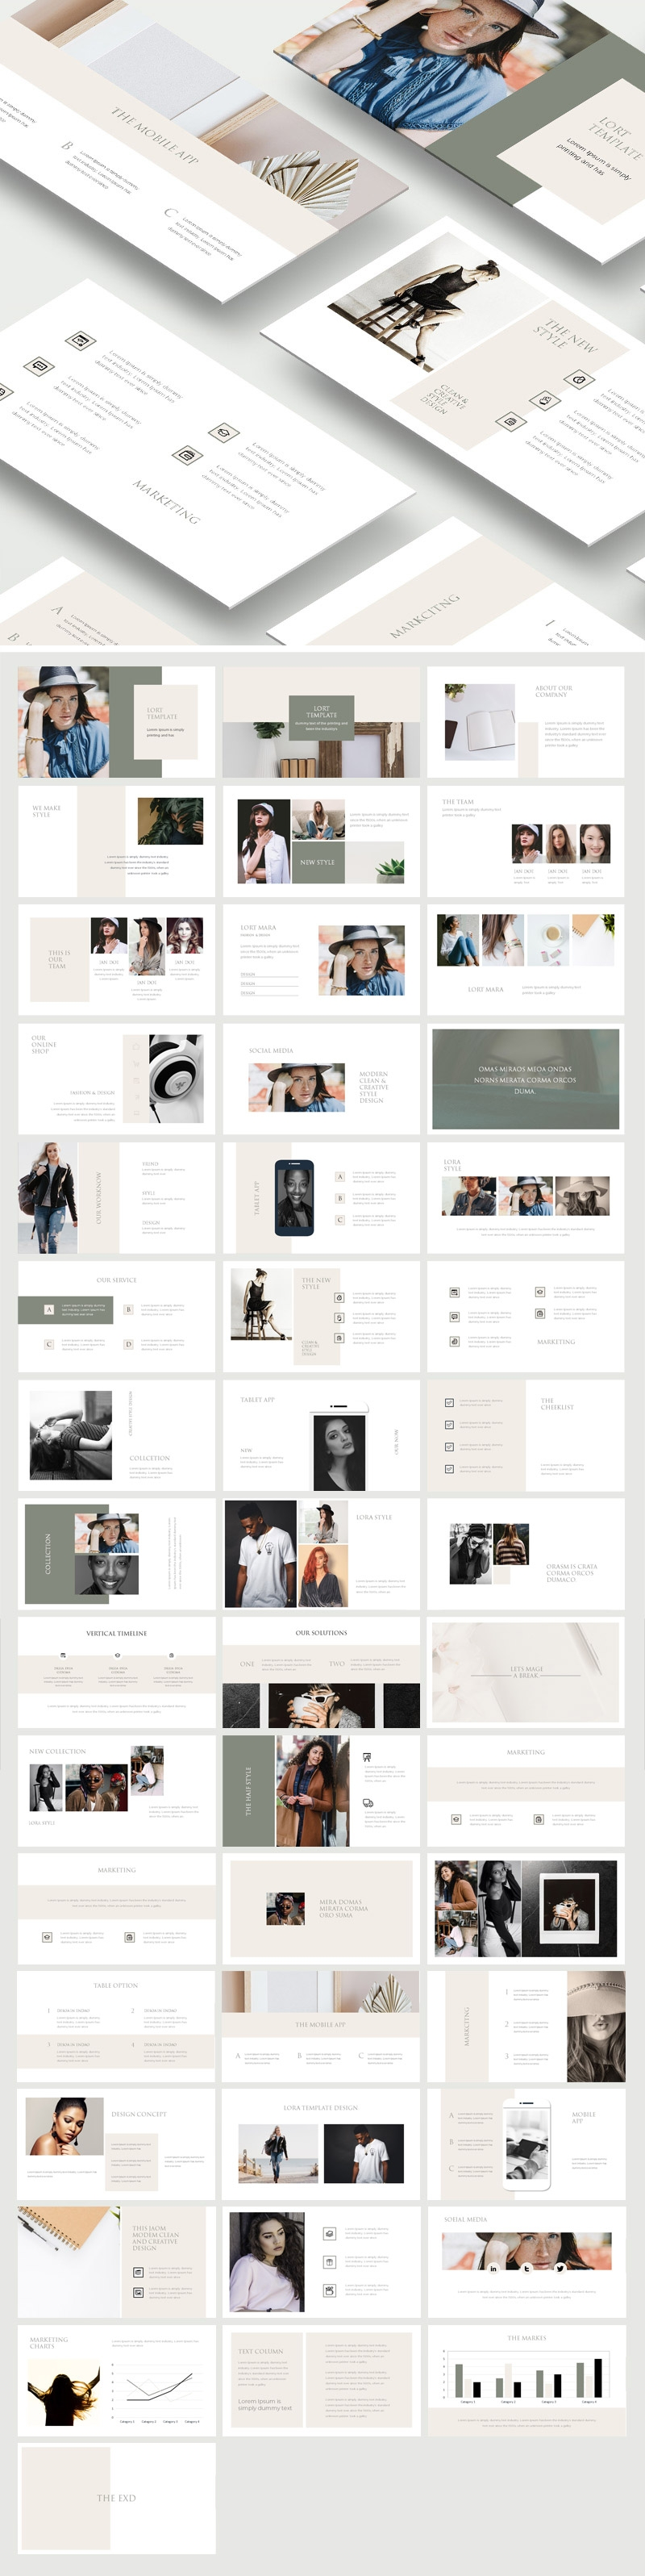 GoldAge Powerpoint Template